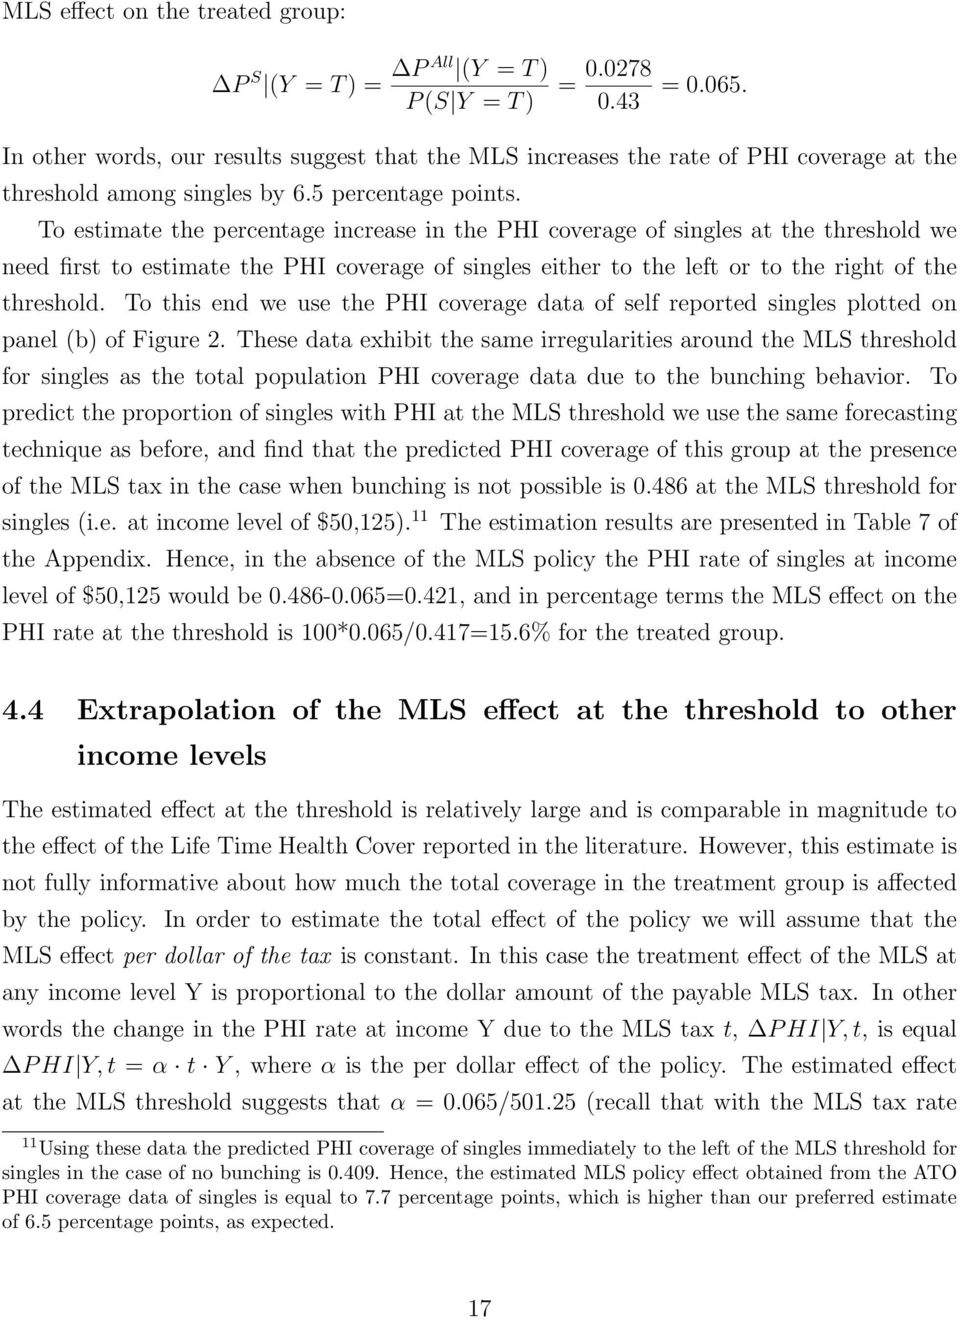 To estimate the percentage increase in the PHI coverage of singles at the threshold we need first to estimate the PHI coverage of singles either to the left or to the right of the threshold.